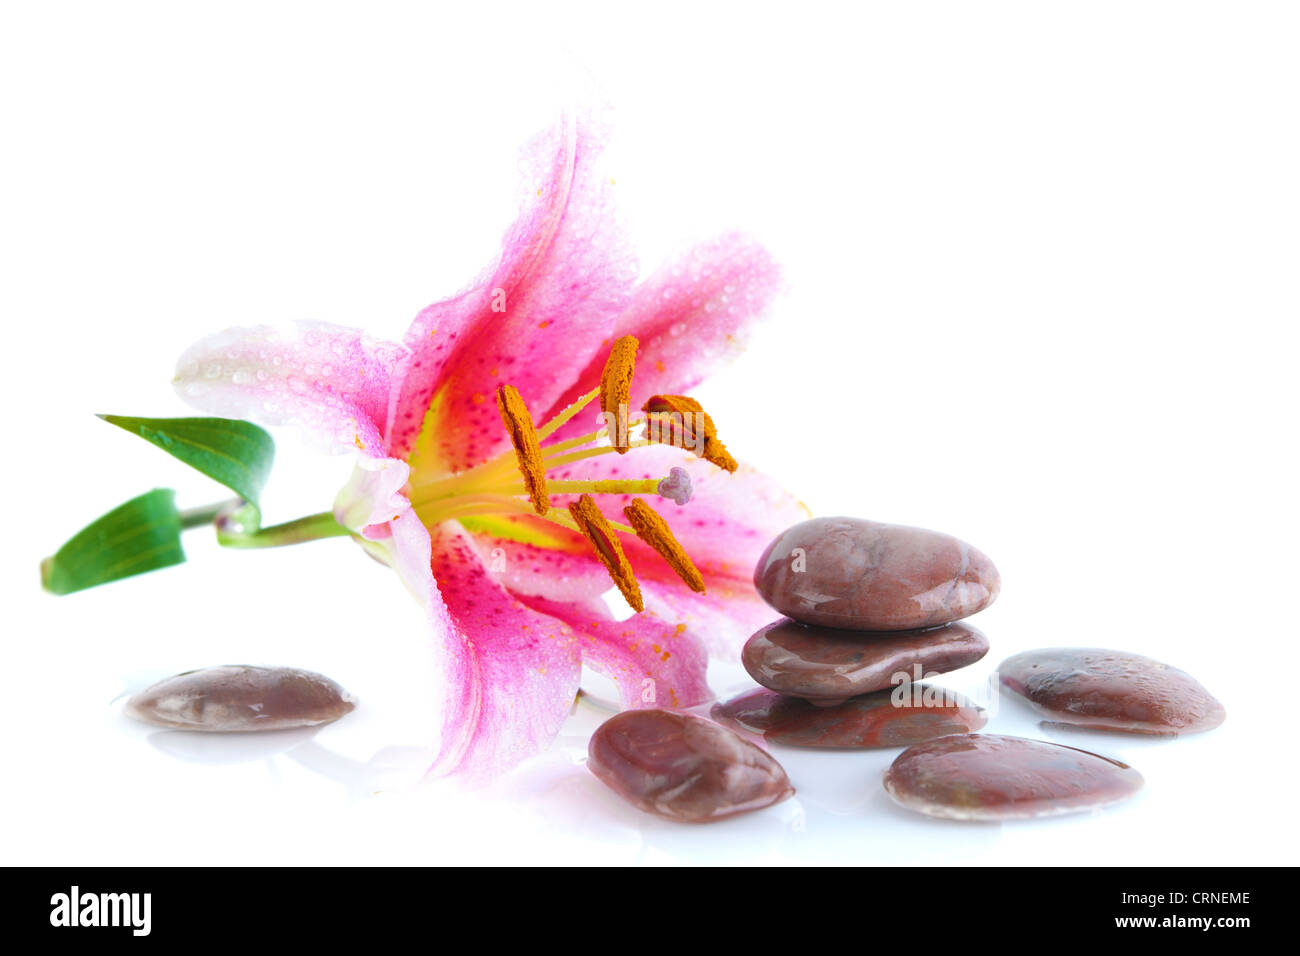 Pink lily and stones, with water reflection Stock Photo